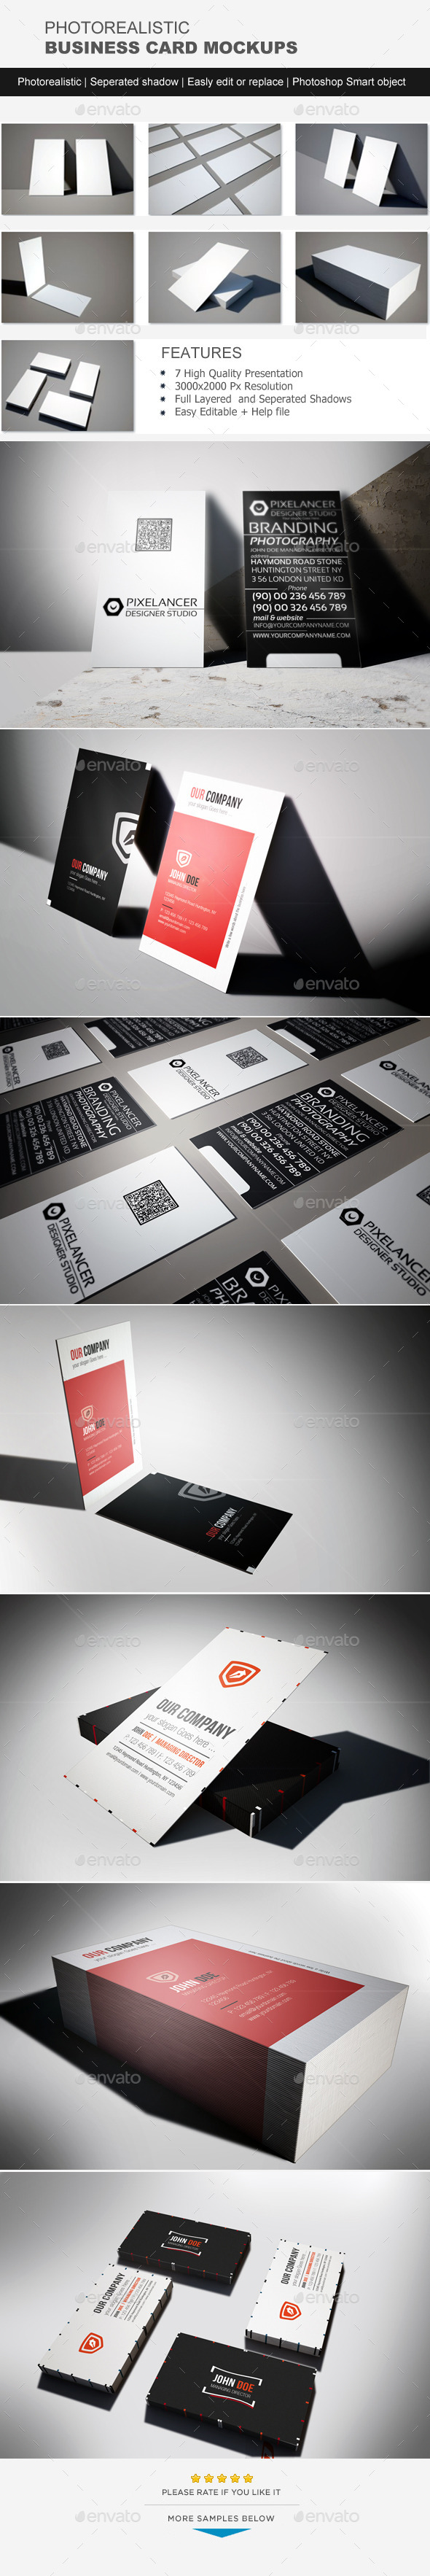 GraphicRiver Photorealistic Business Card Mock-Up 11445256